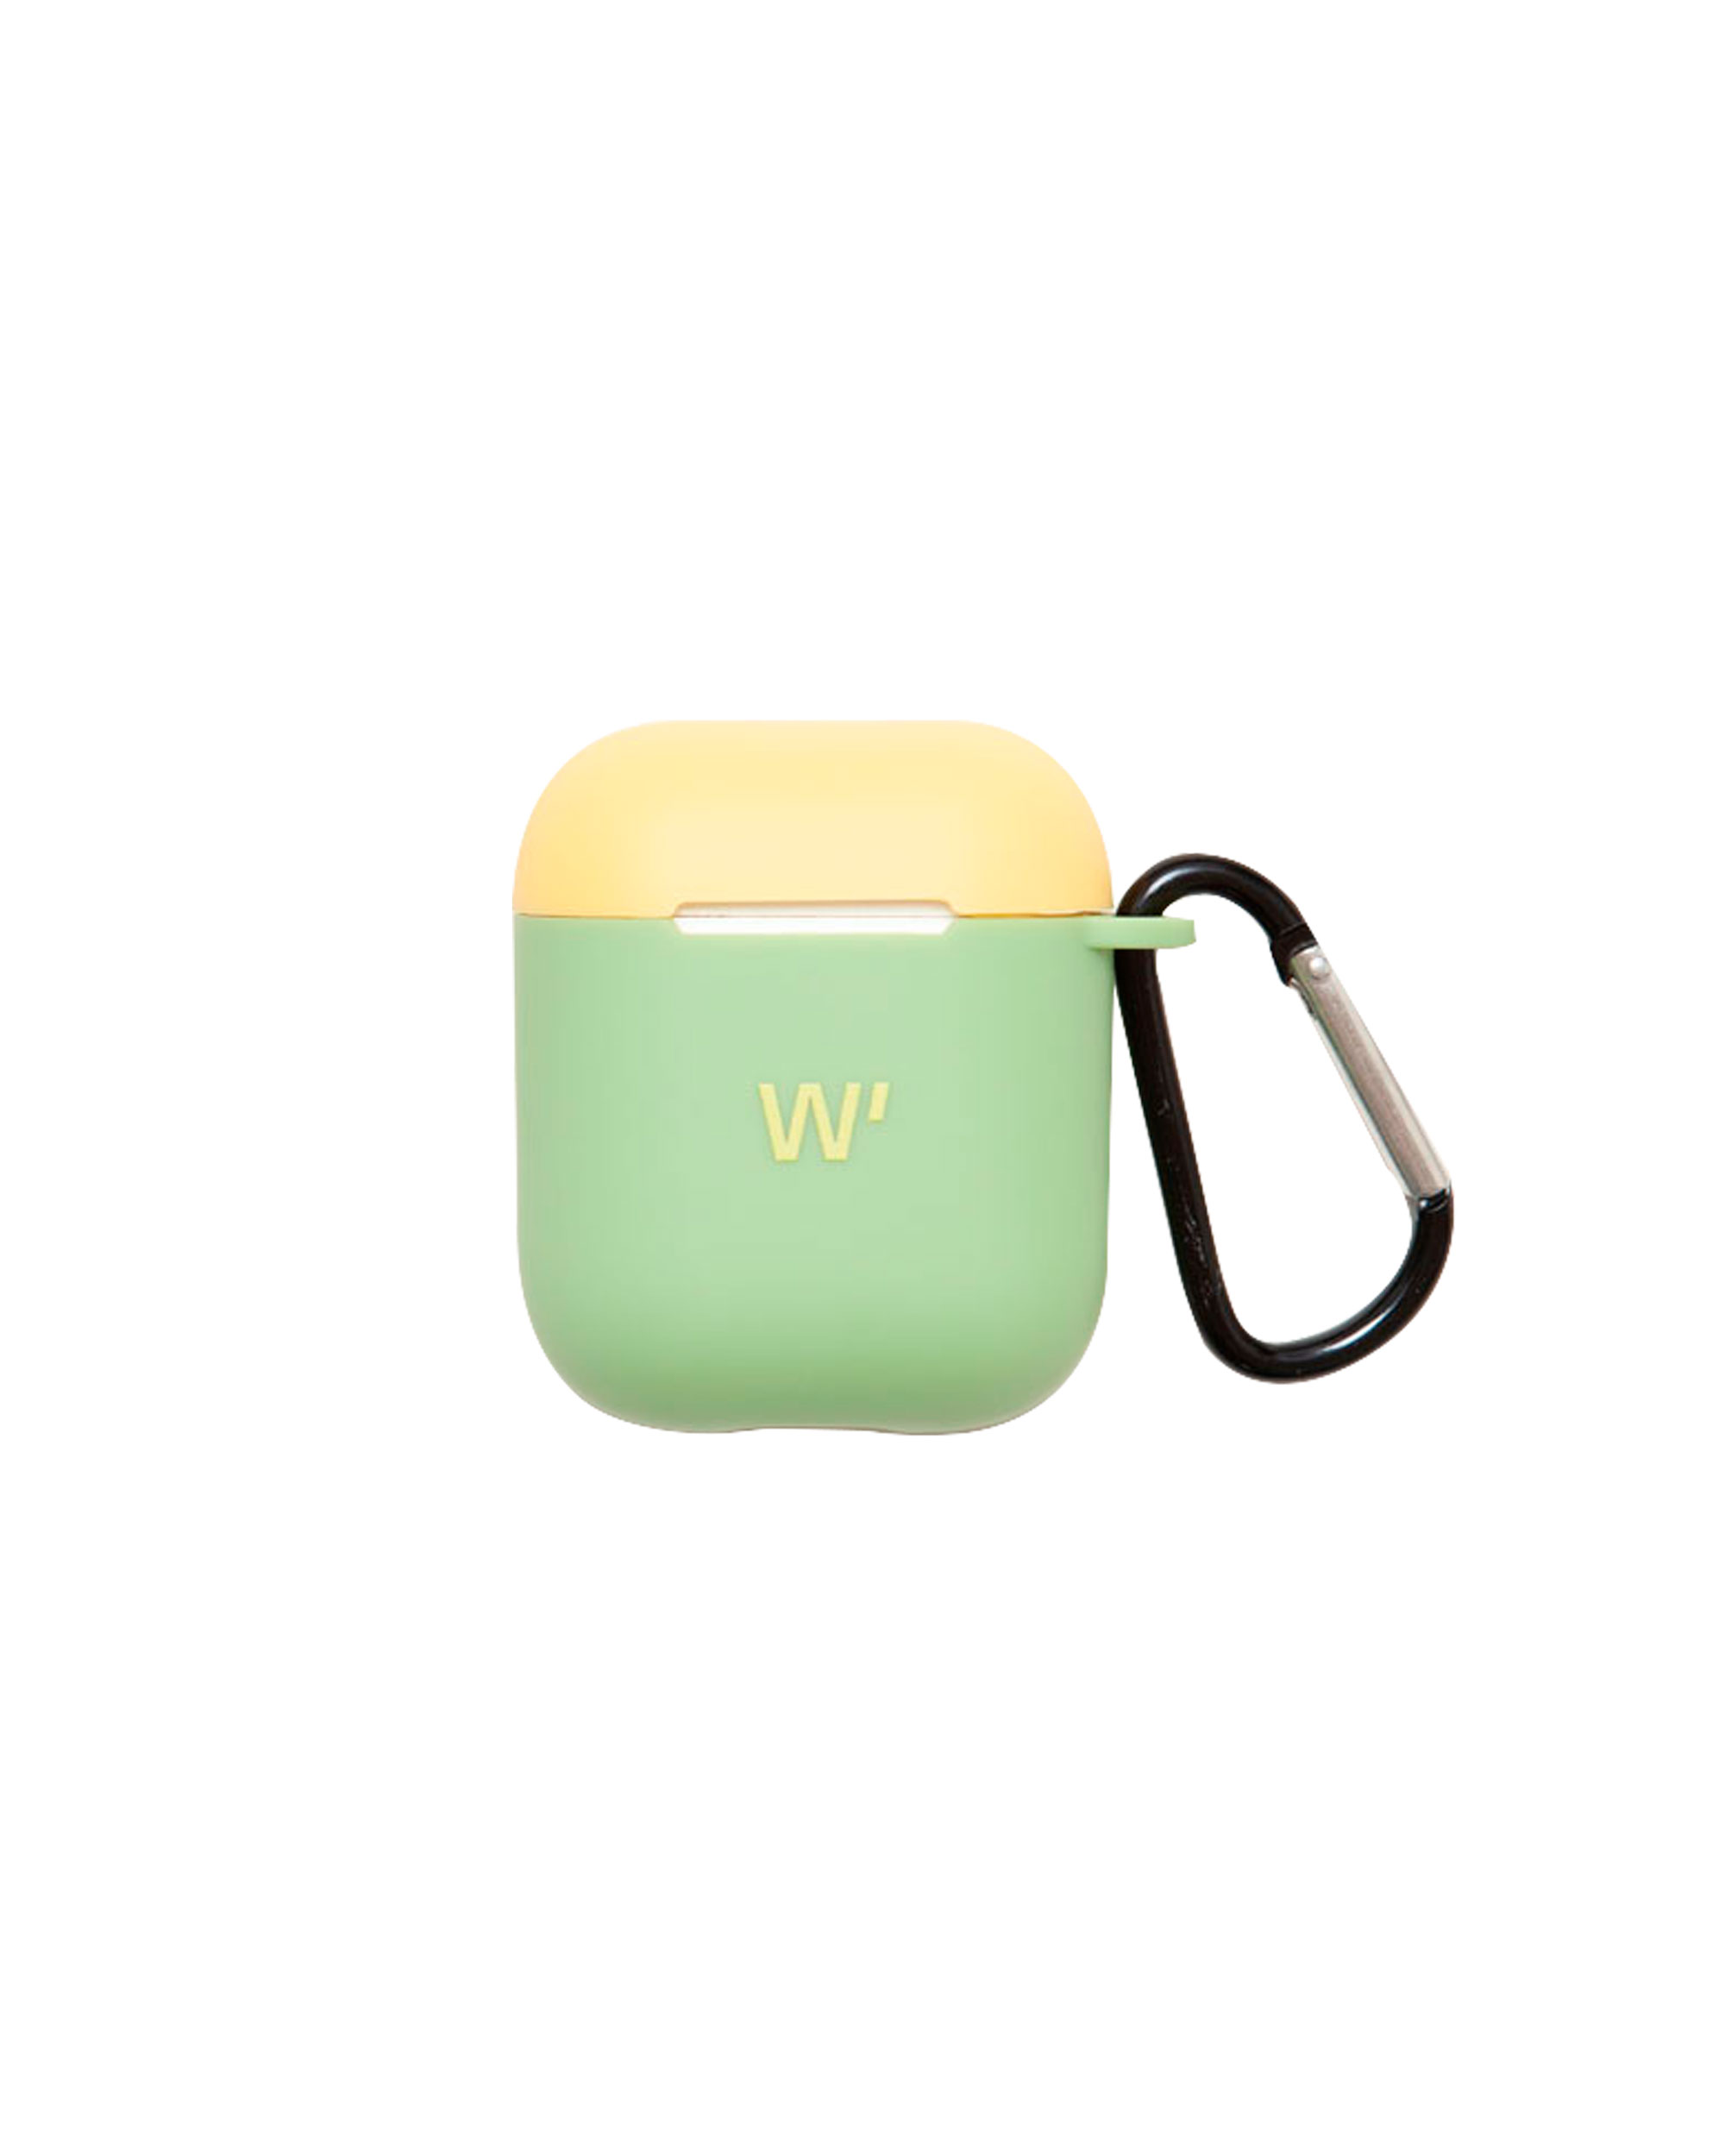 BLOCK GREEN - Coque pour Airpods pro